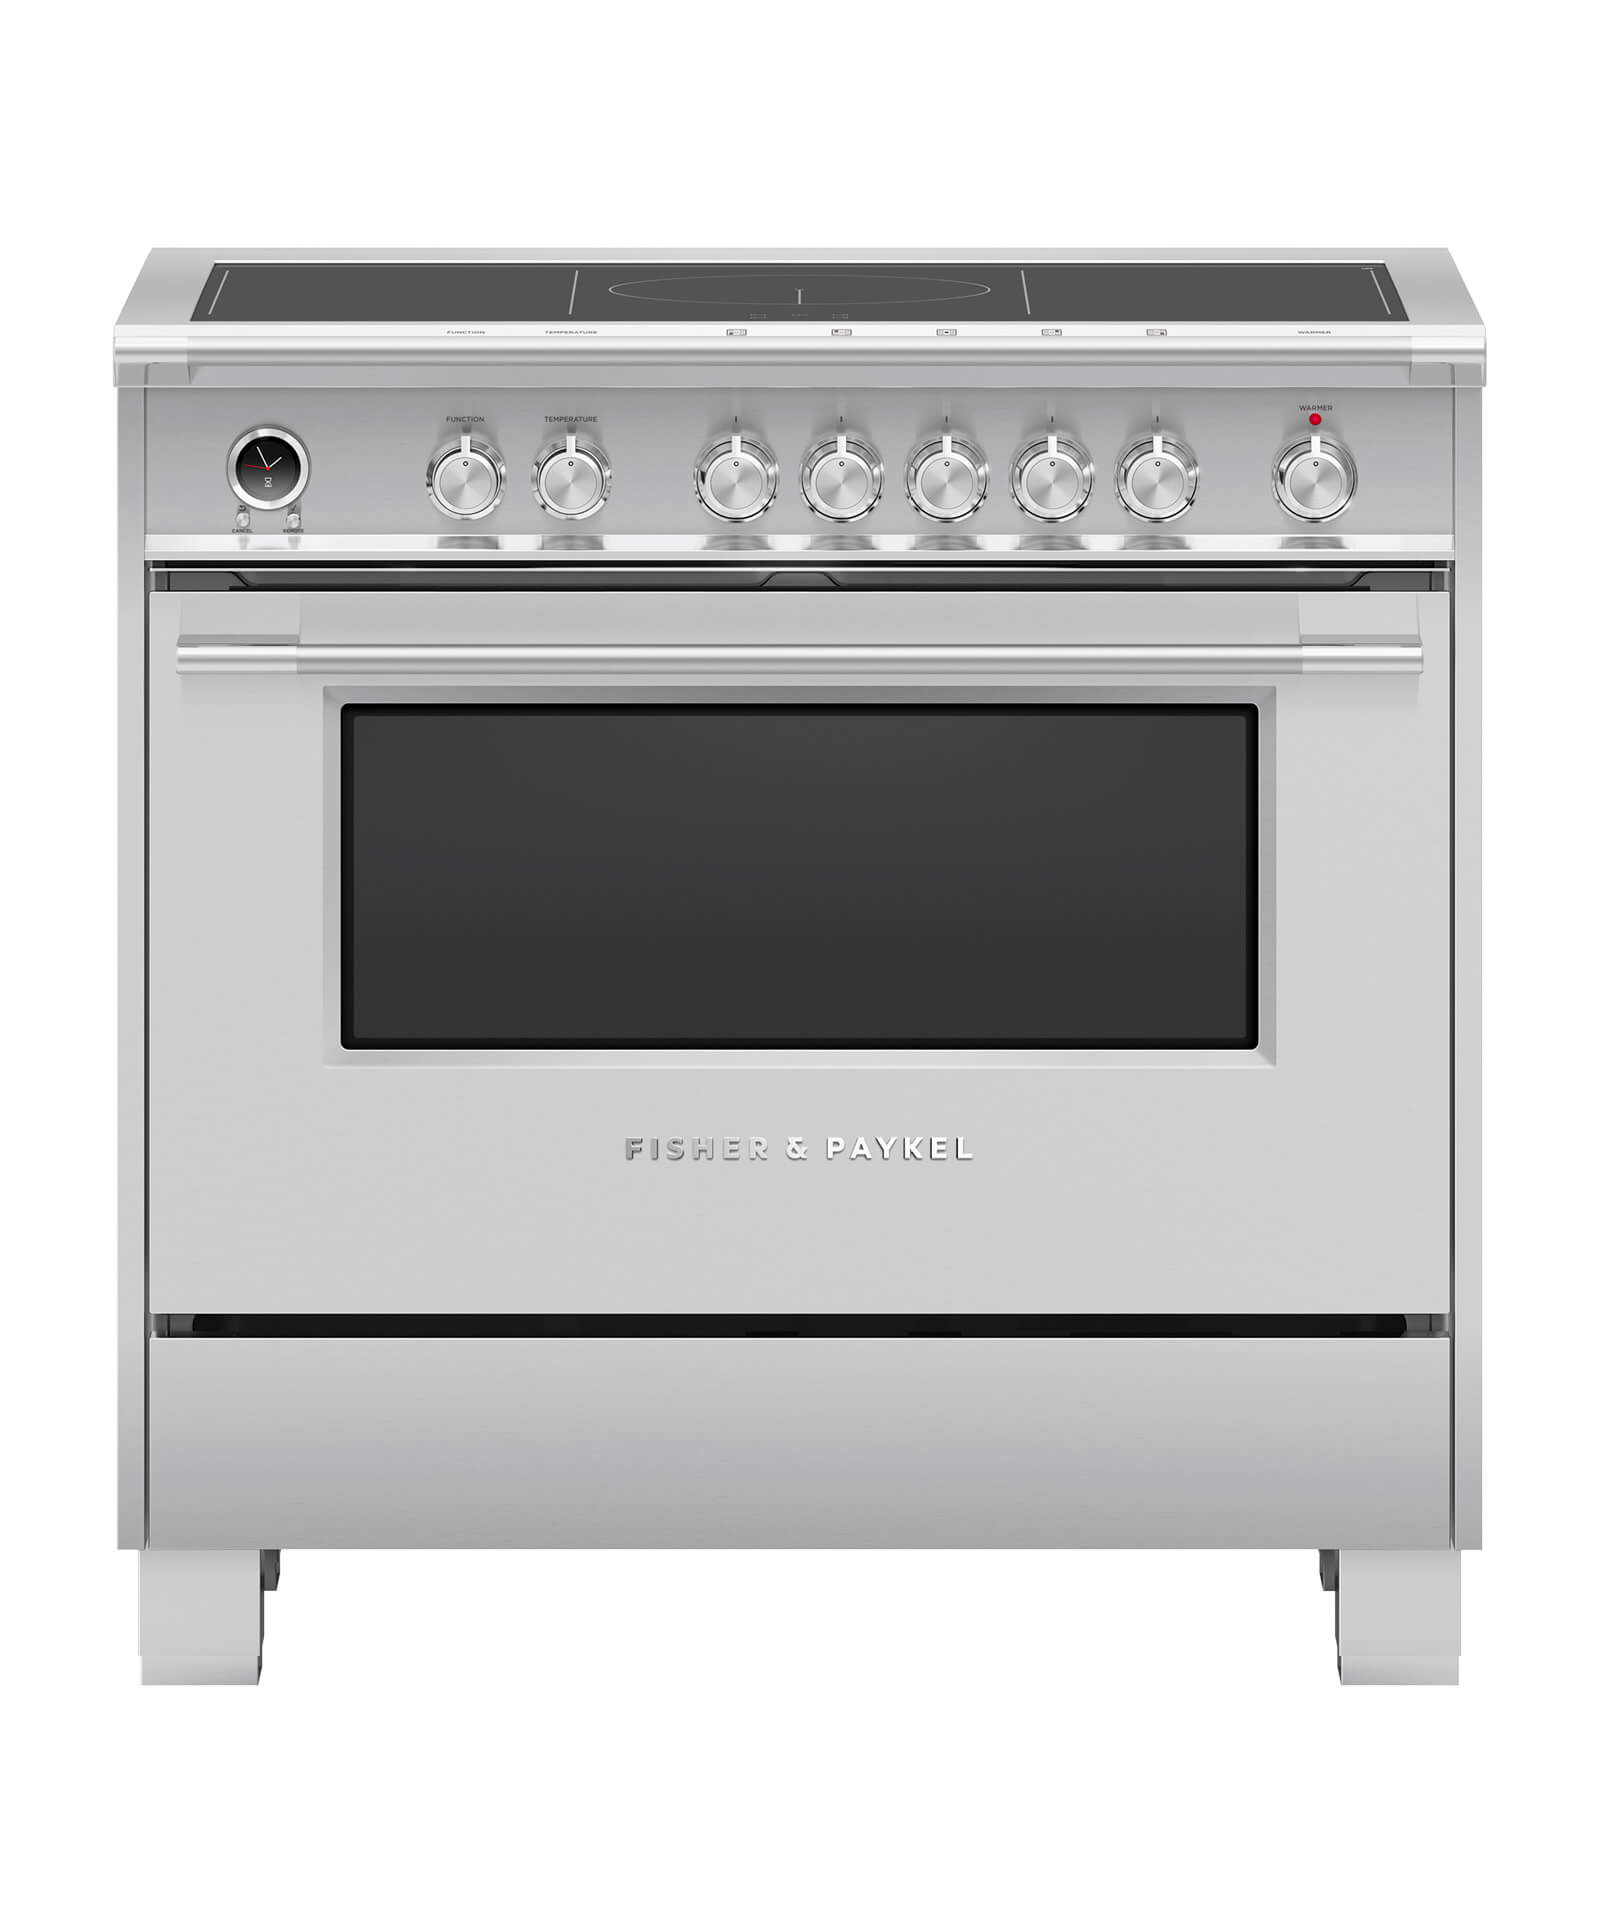 "Fisher and Paykel Induction Range, 36"", 5 Zones, Self-cleaning"